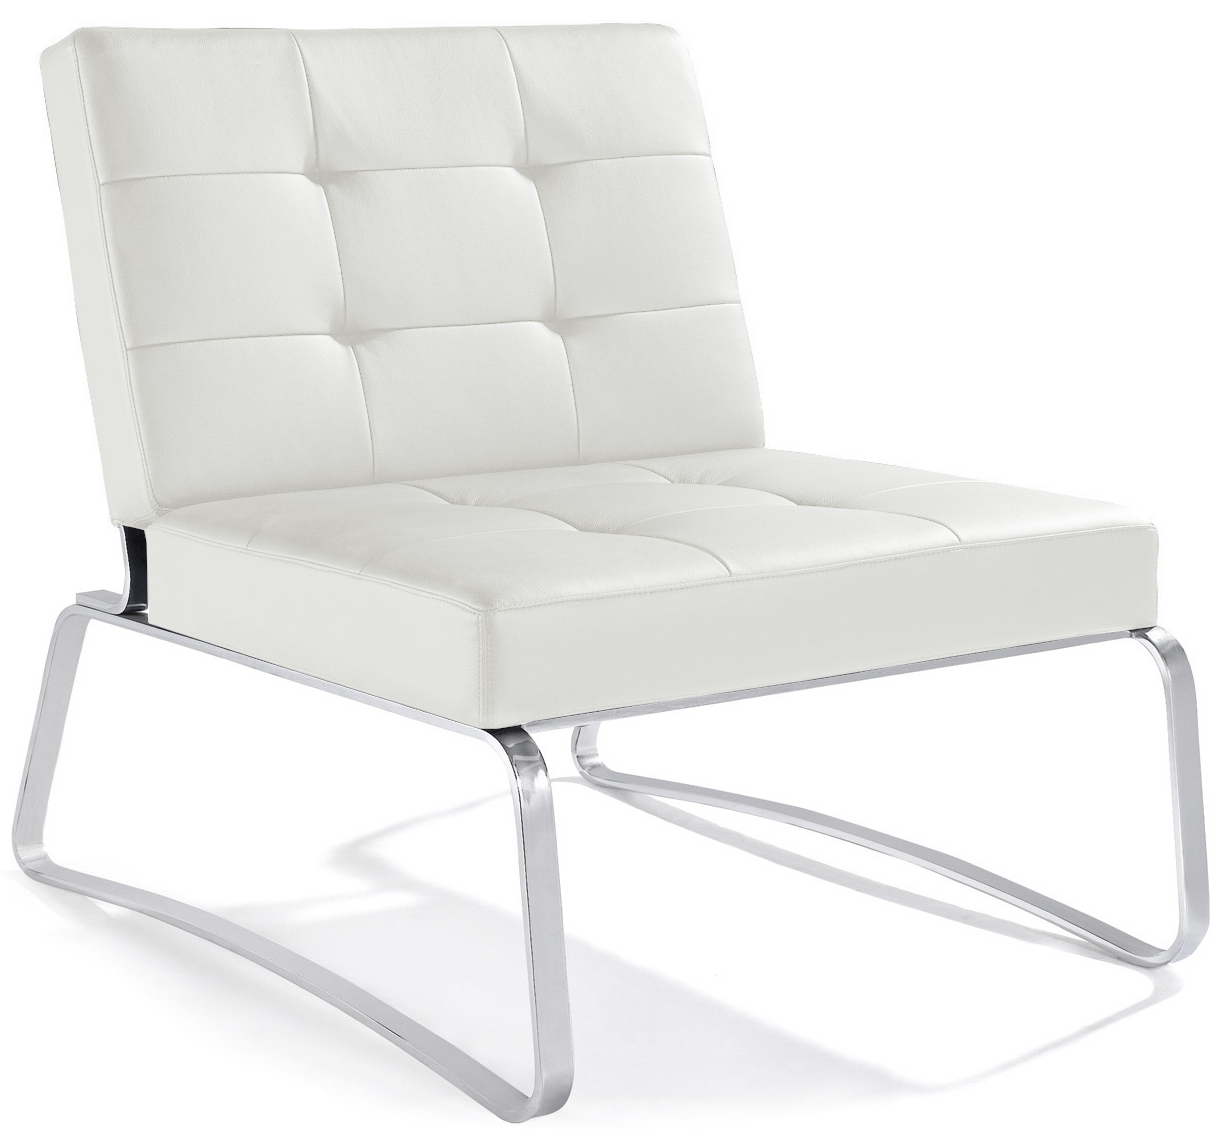 hermes-lounge-chair-in-white.jpg